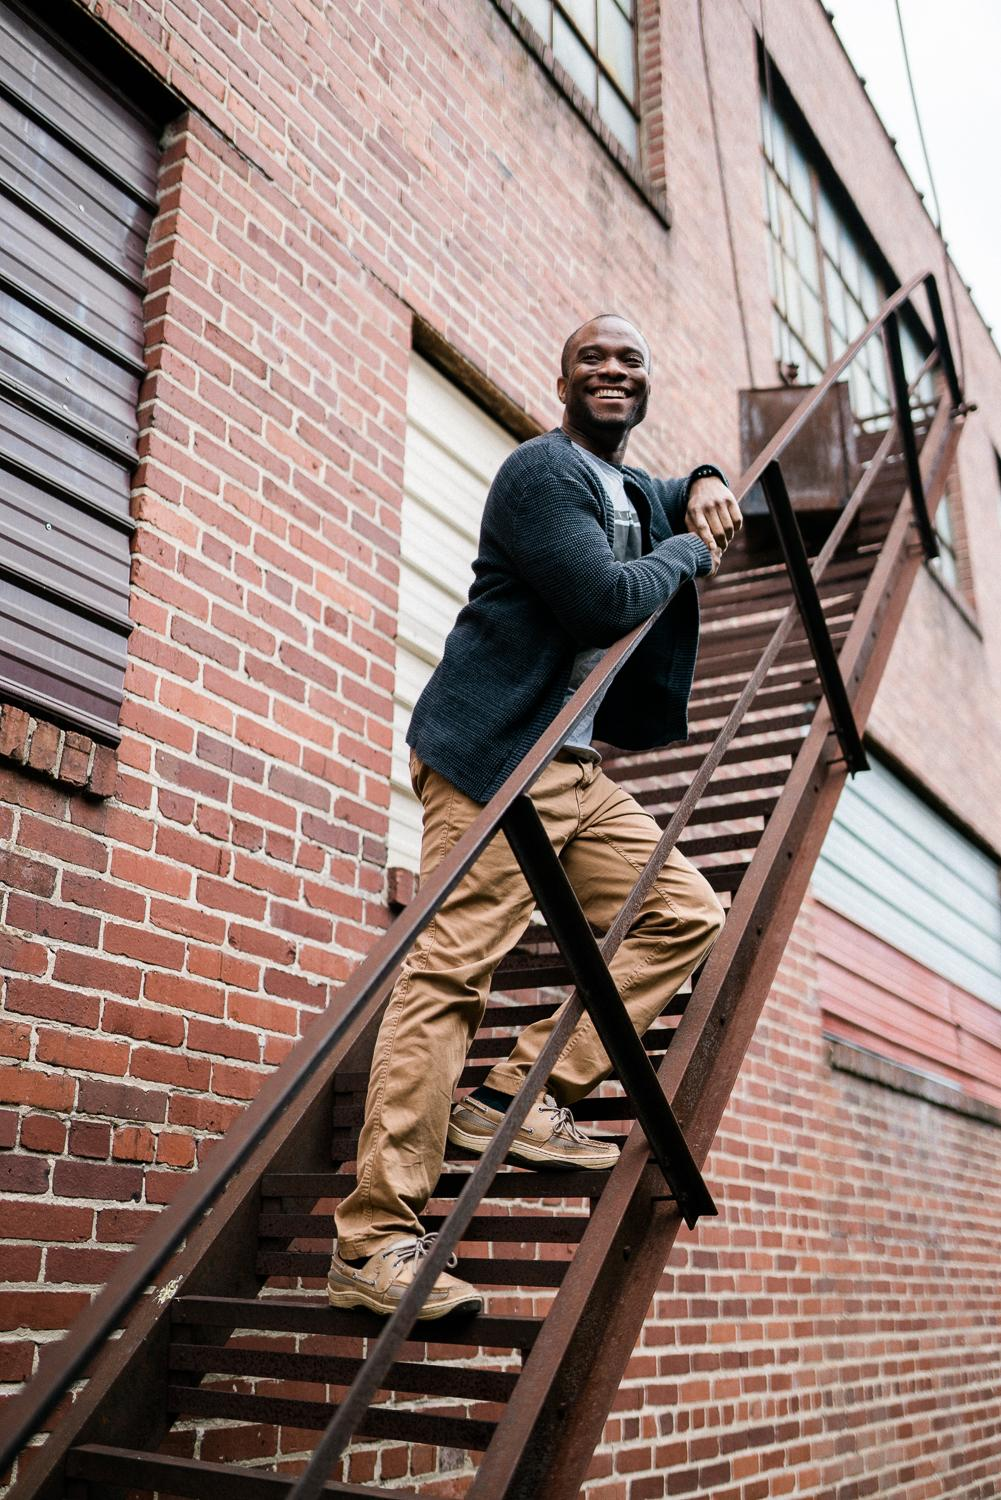 professional photographer Jason Hampden on a fire escape with a brick wall